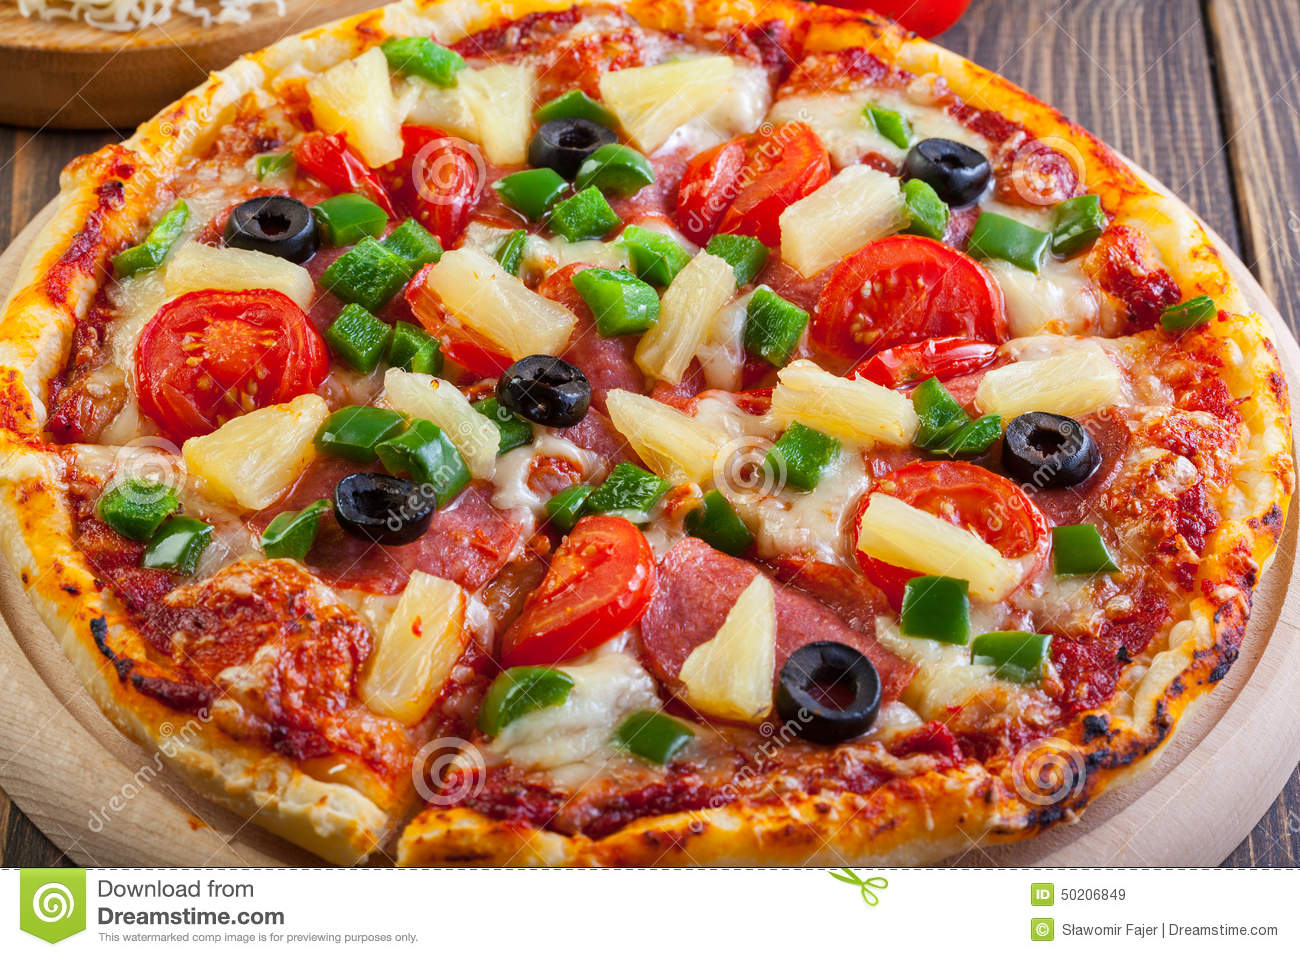 fresh baked pizza hawaii stock image image of cuisine. Black Bedroom Furniture Sets. Home Design Ideas